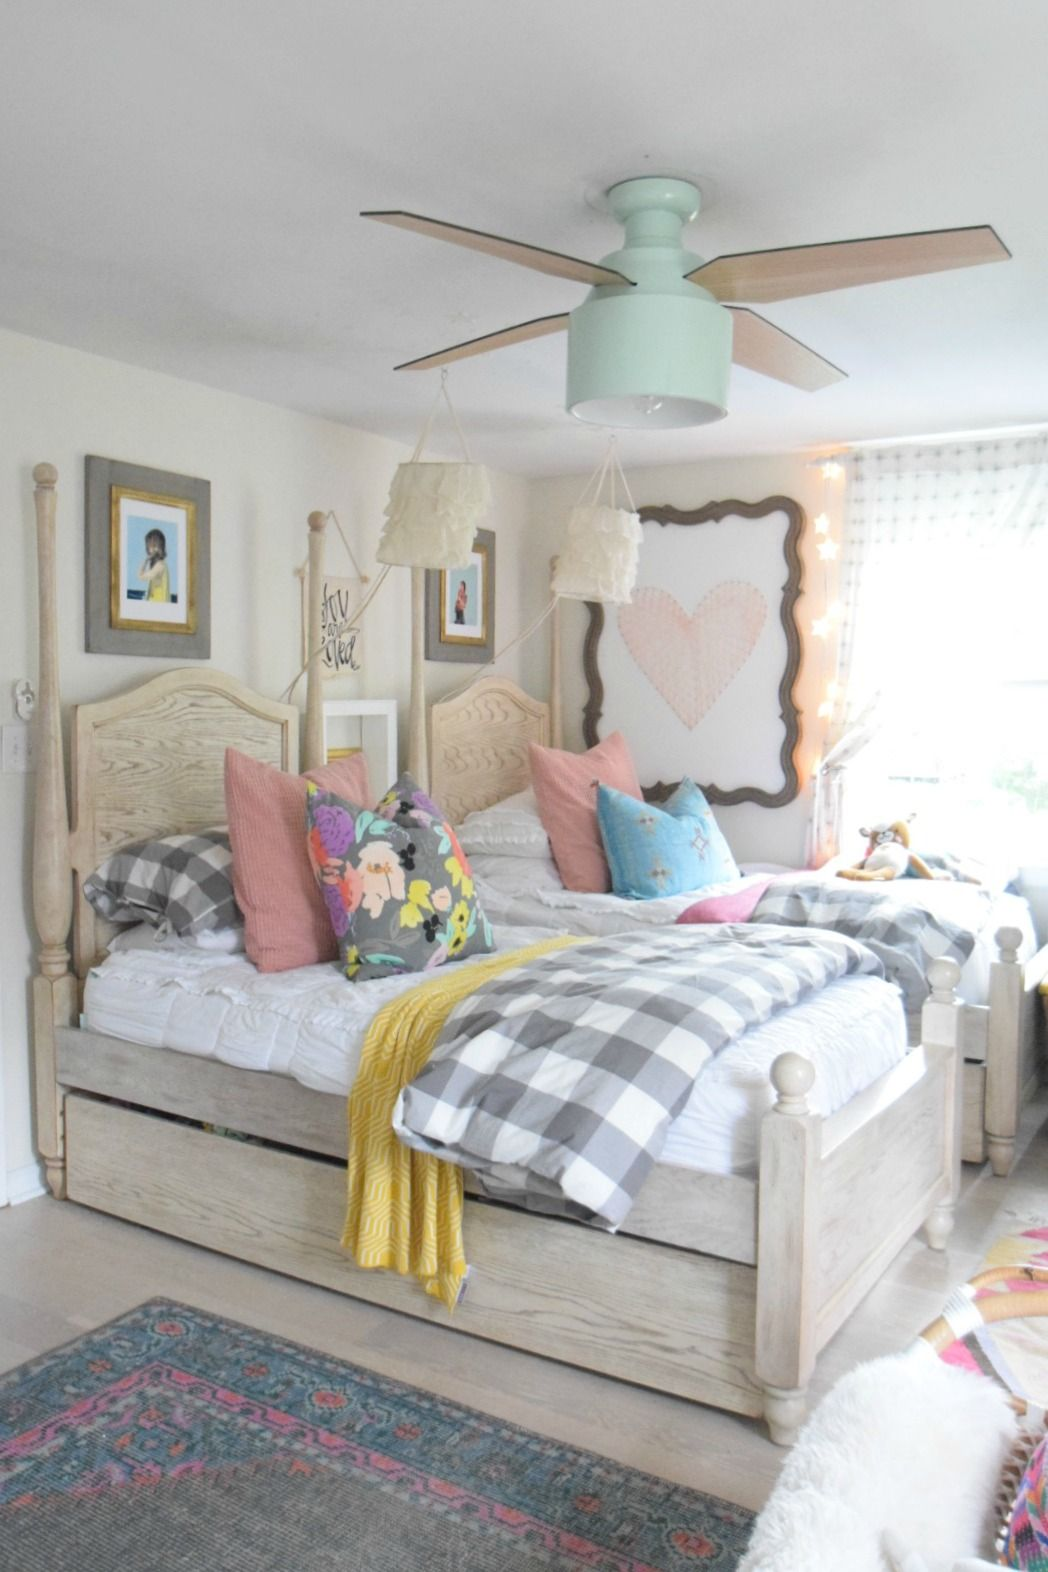 Modern Ceiling Fans Shared Girls Bedroom Ceiling Fan Bedroom